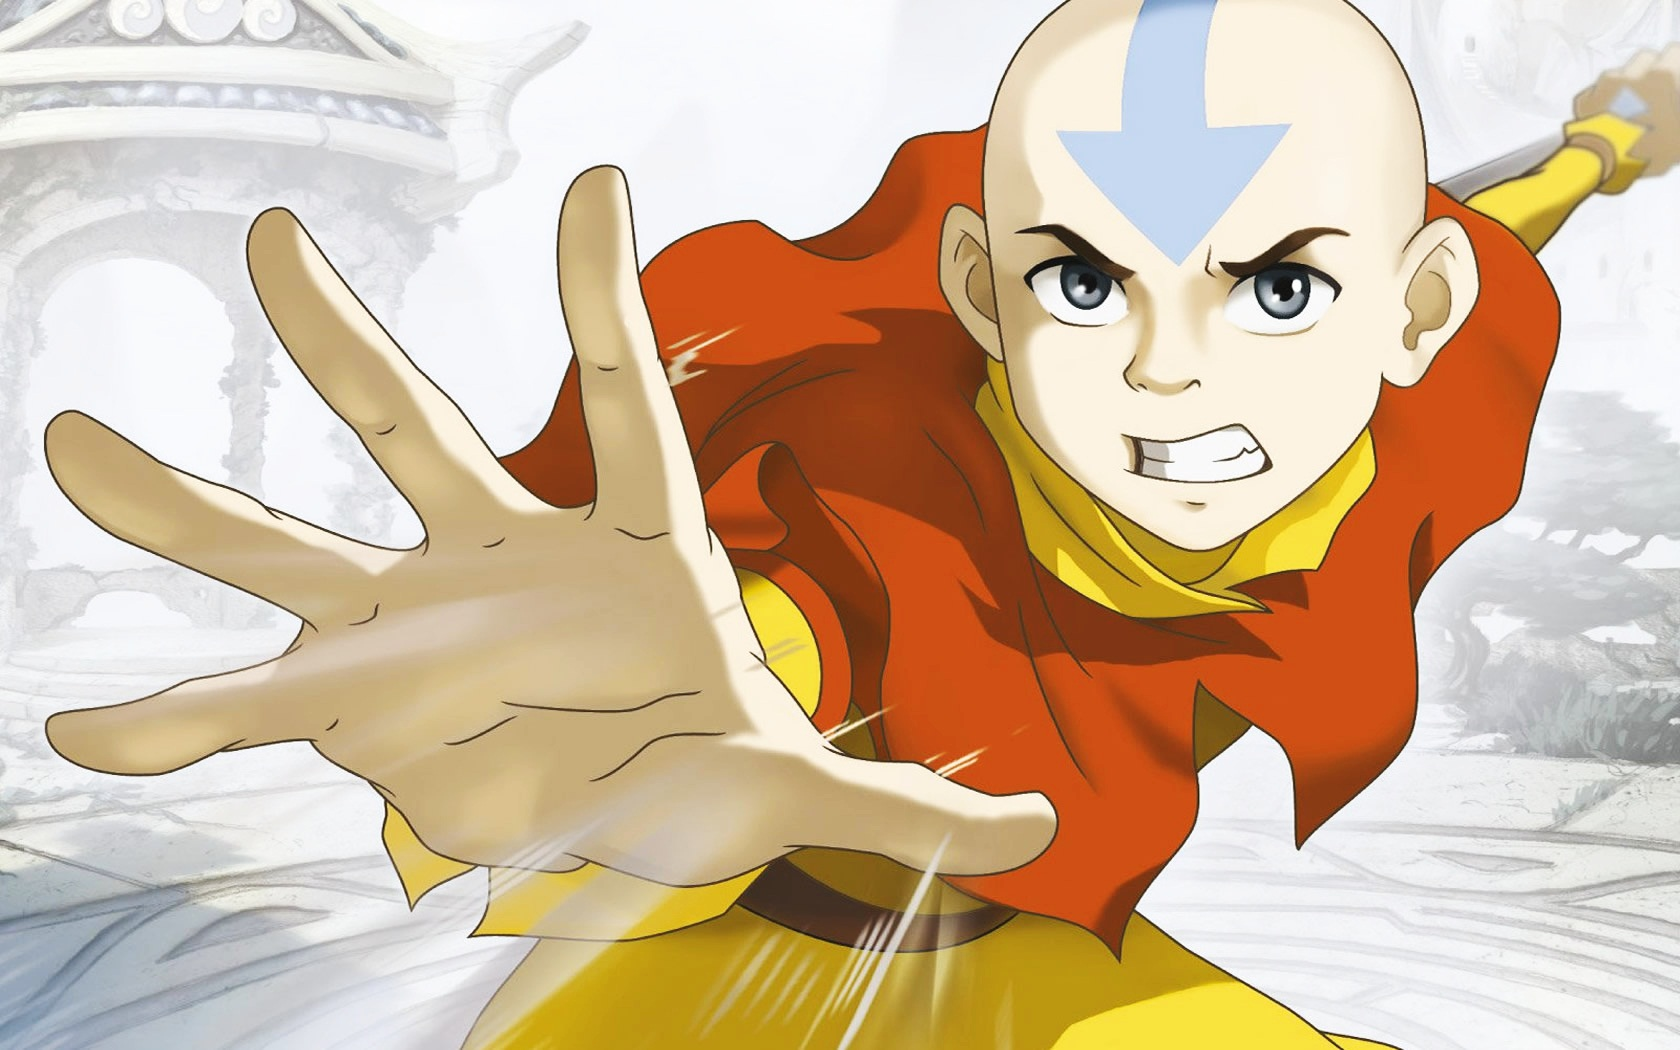 Avatar The Last Airbender 315.69 Kb